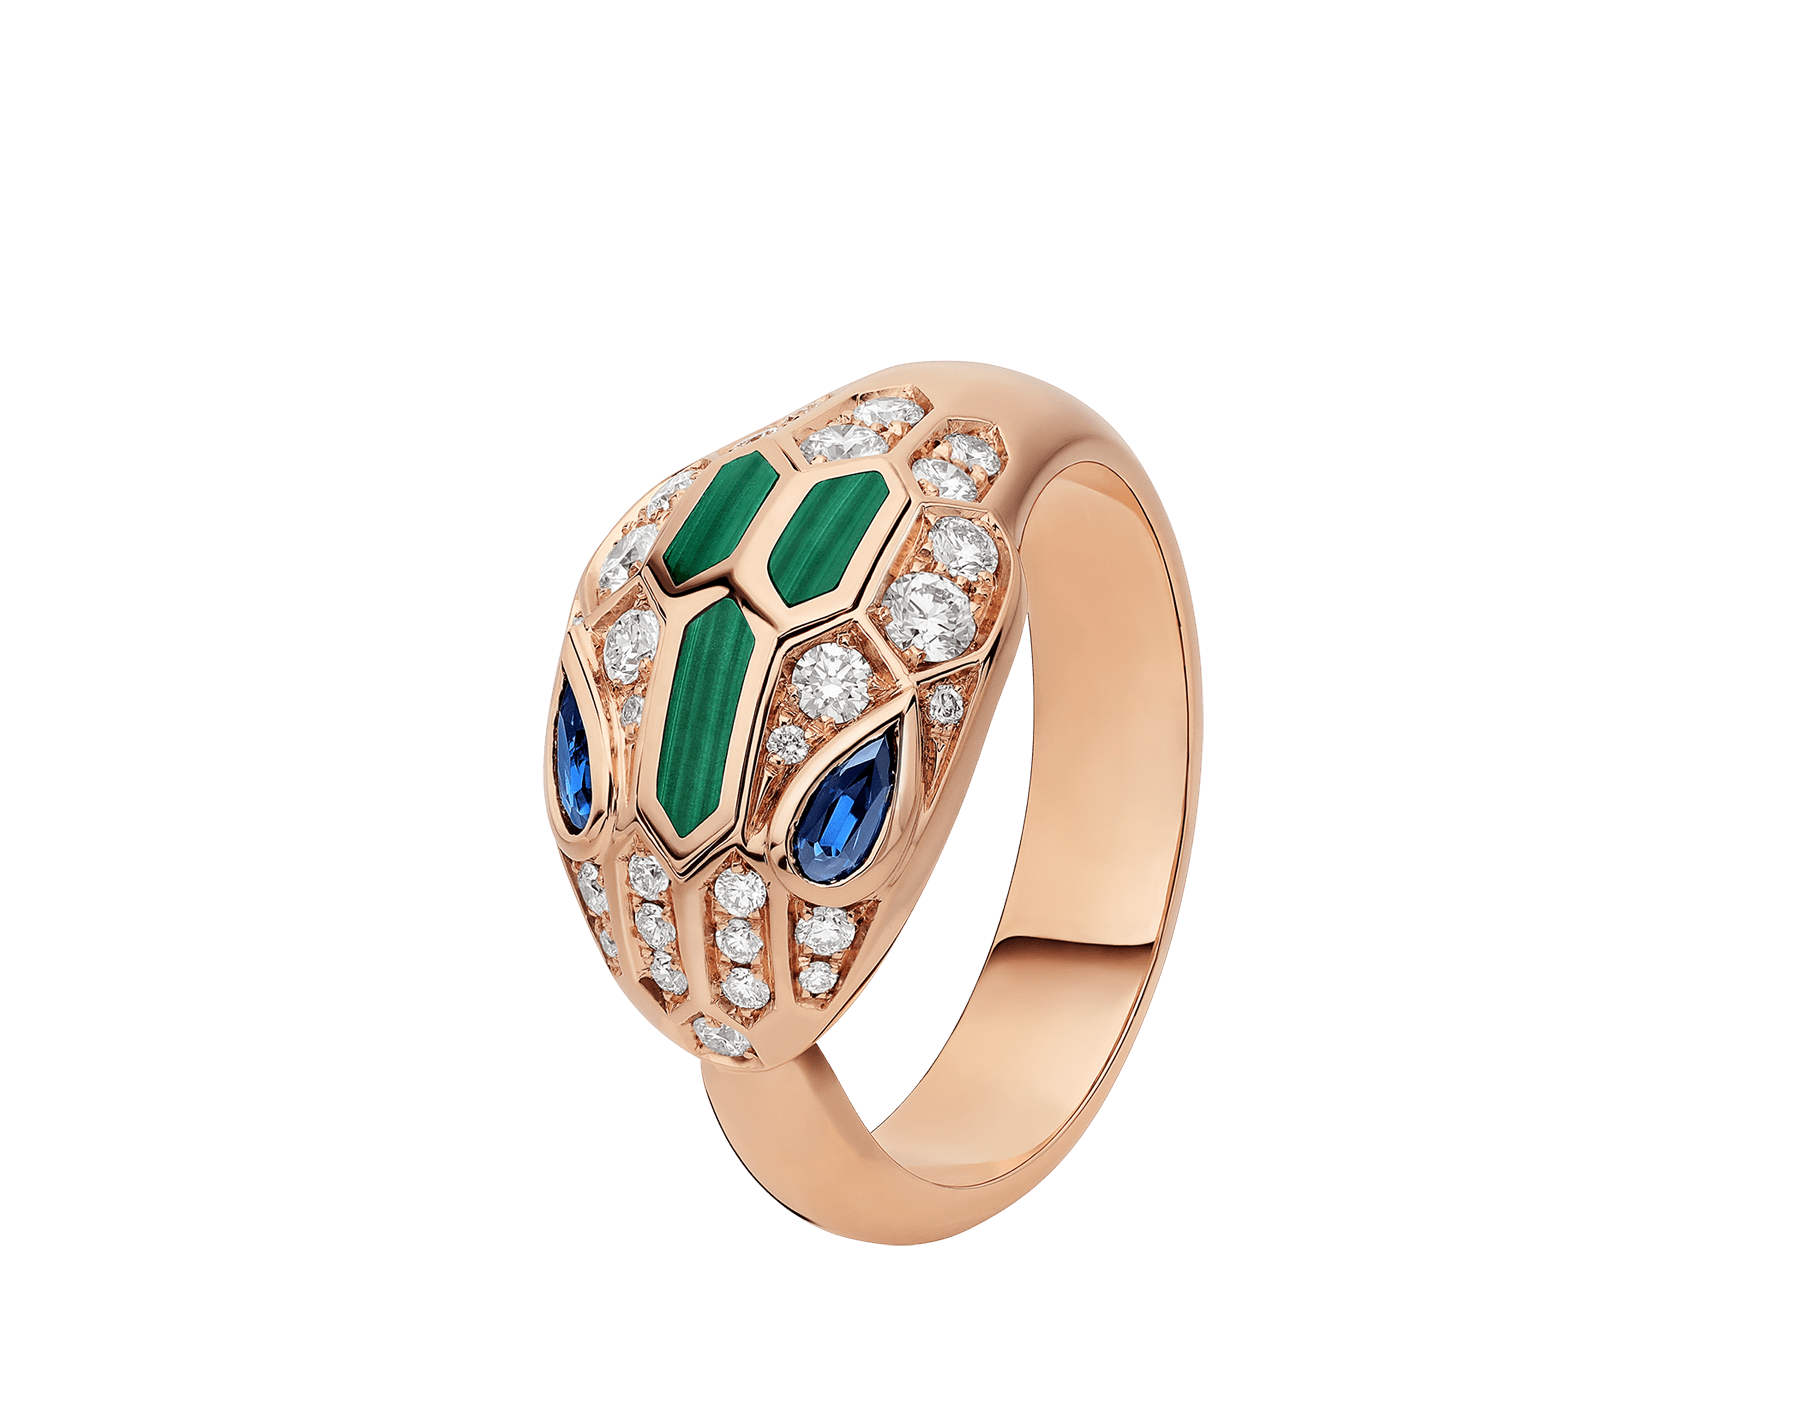 Serpenti 18 kt rose gold ring set with blue sapphire eyes, malachite elements and pavé diamonds. AN858587 image 1